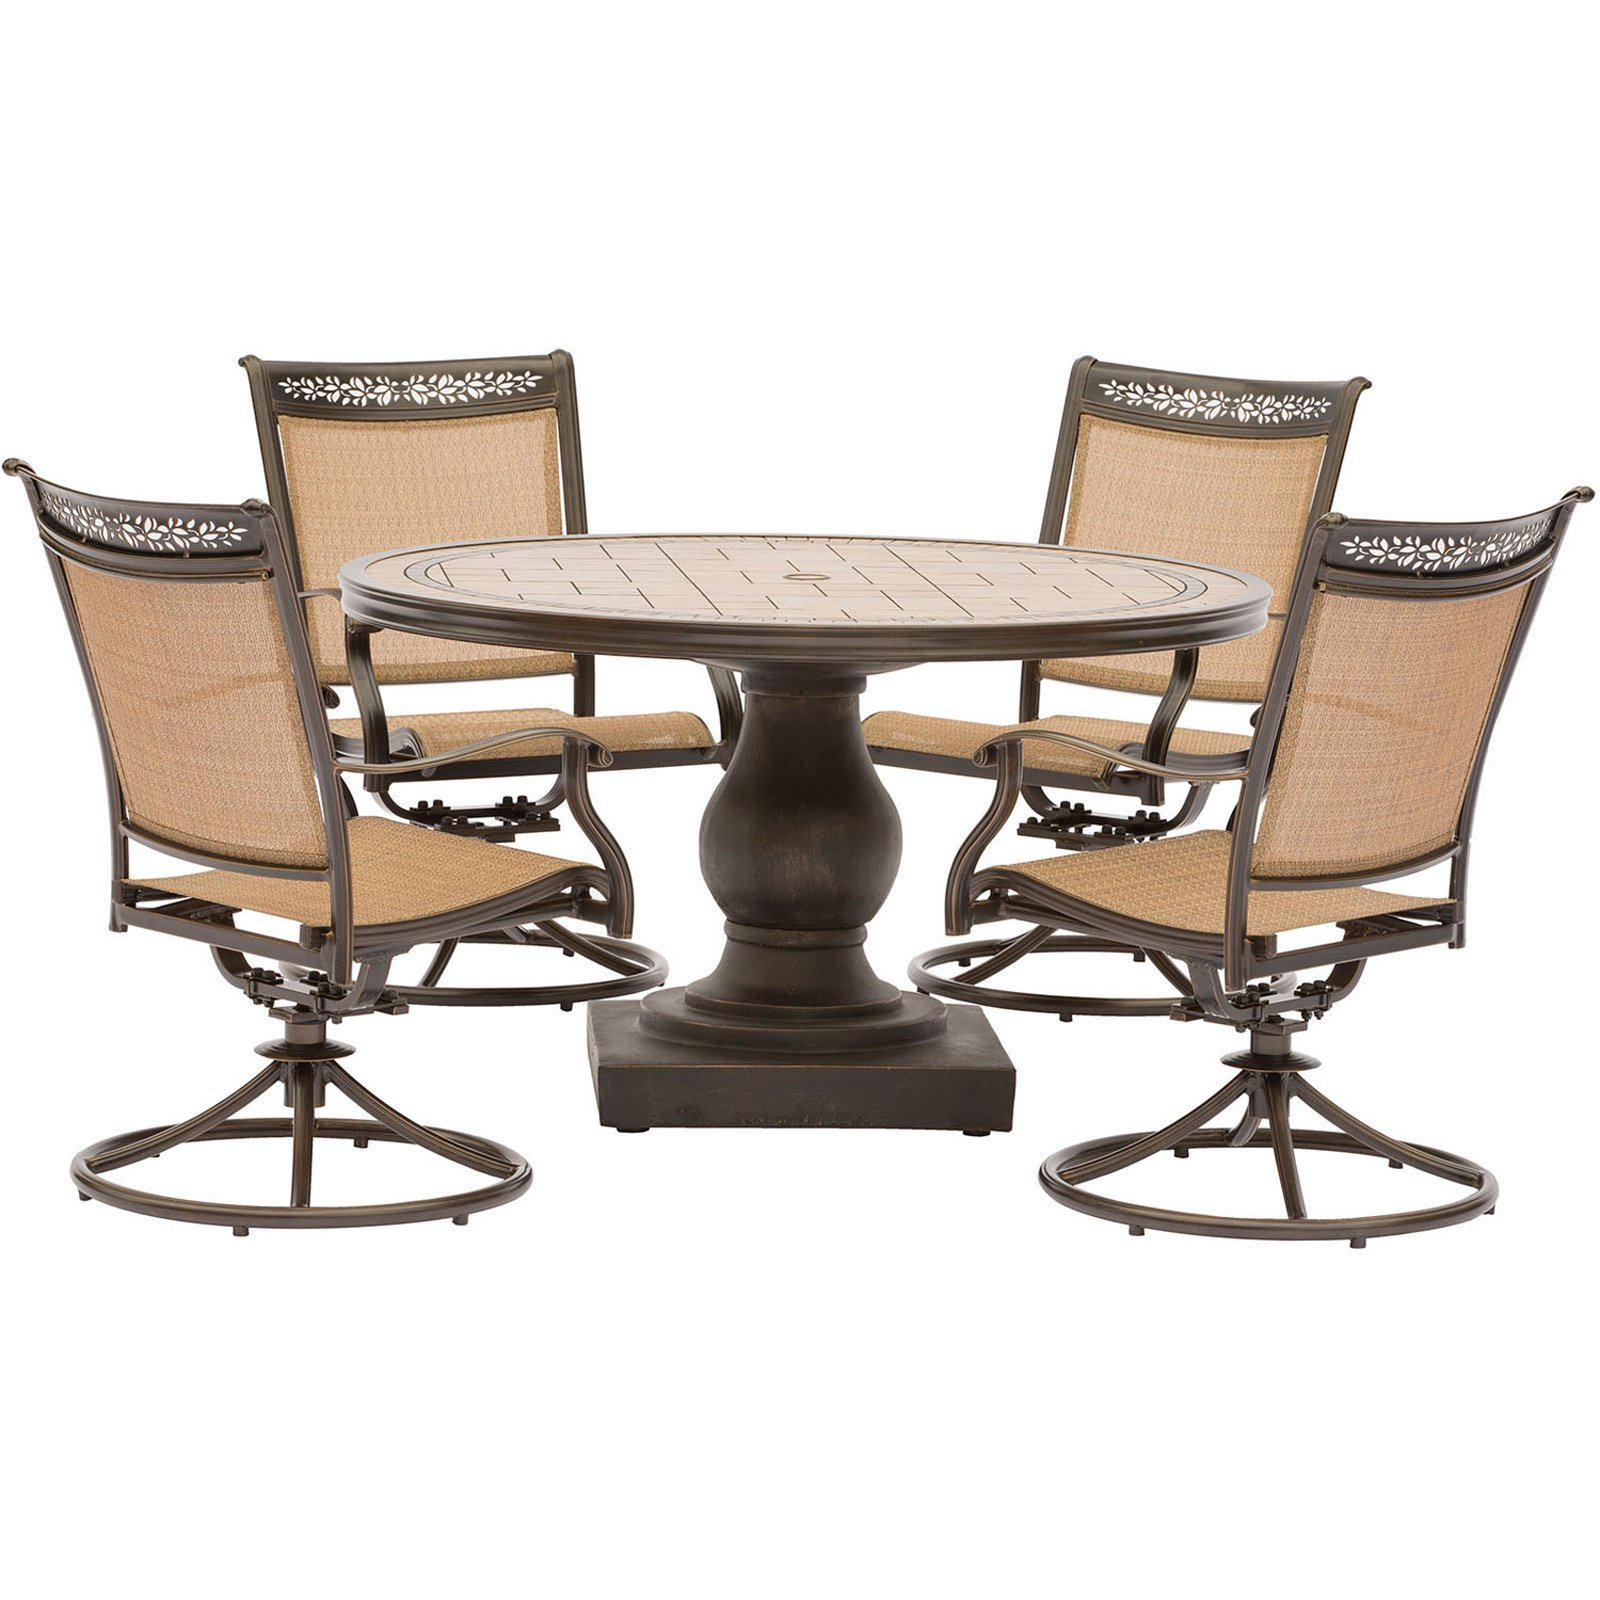 Hanover Fontana 5-Piece Outdoor Dining Set with Swivel Rockers and Tile-Top Table